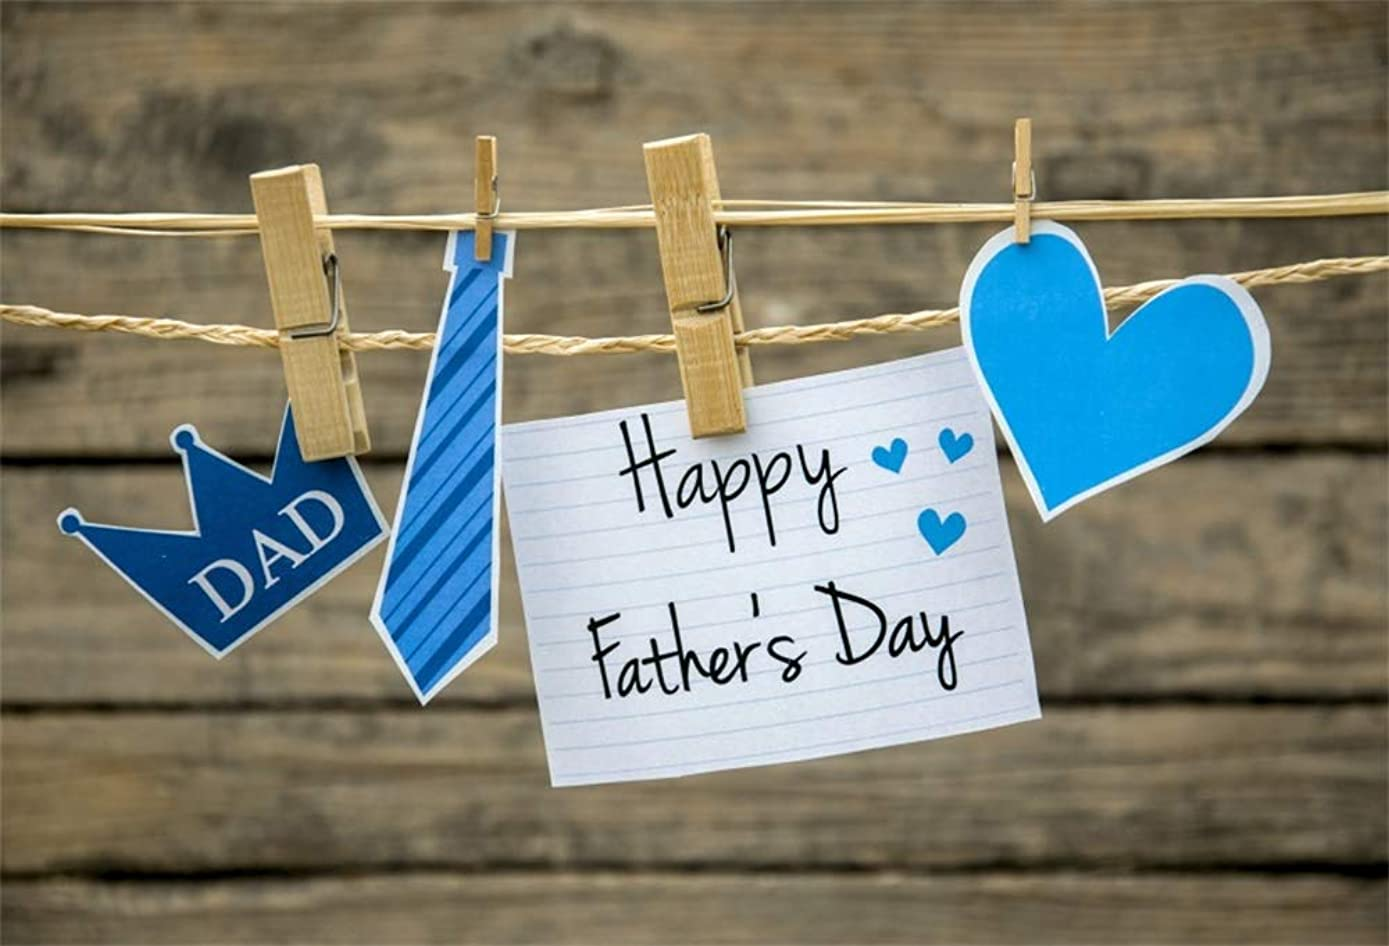 AOFOTO 7x5ft Father's Day Background Paper Crown Tie Love Heart Card Clothesline Wood Clothespins Blurry Wooden Plank Customized Photography Backdrop Festival Celebration Photo Booth Prop